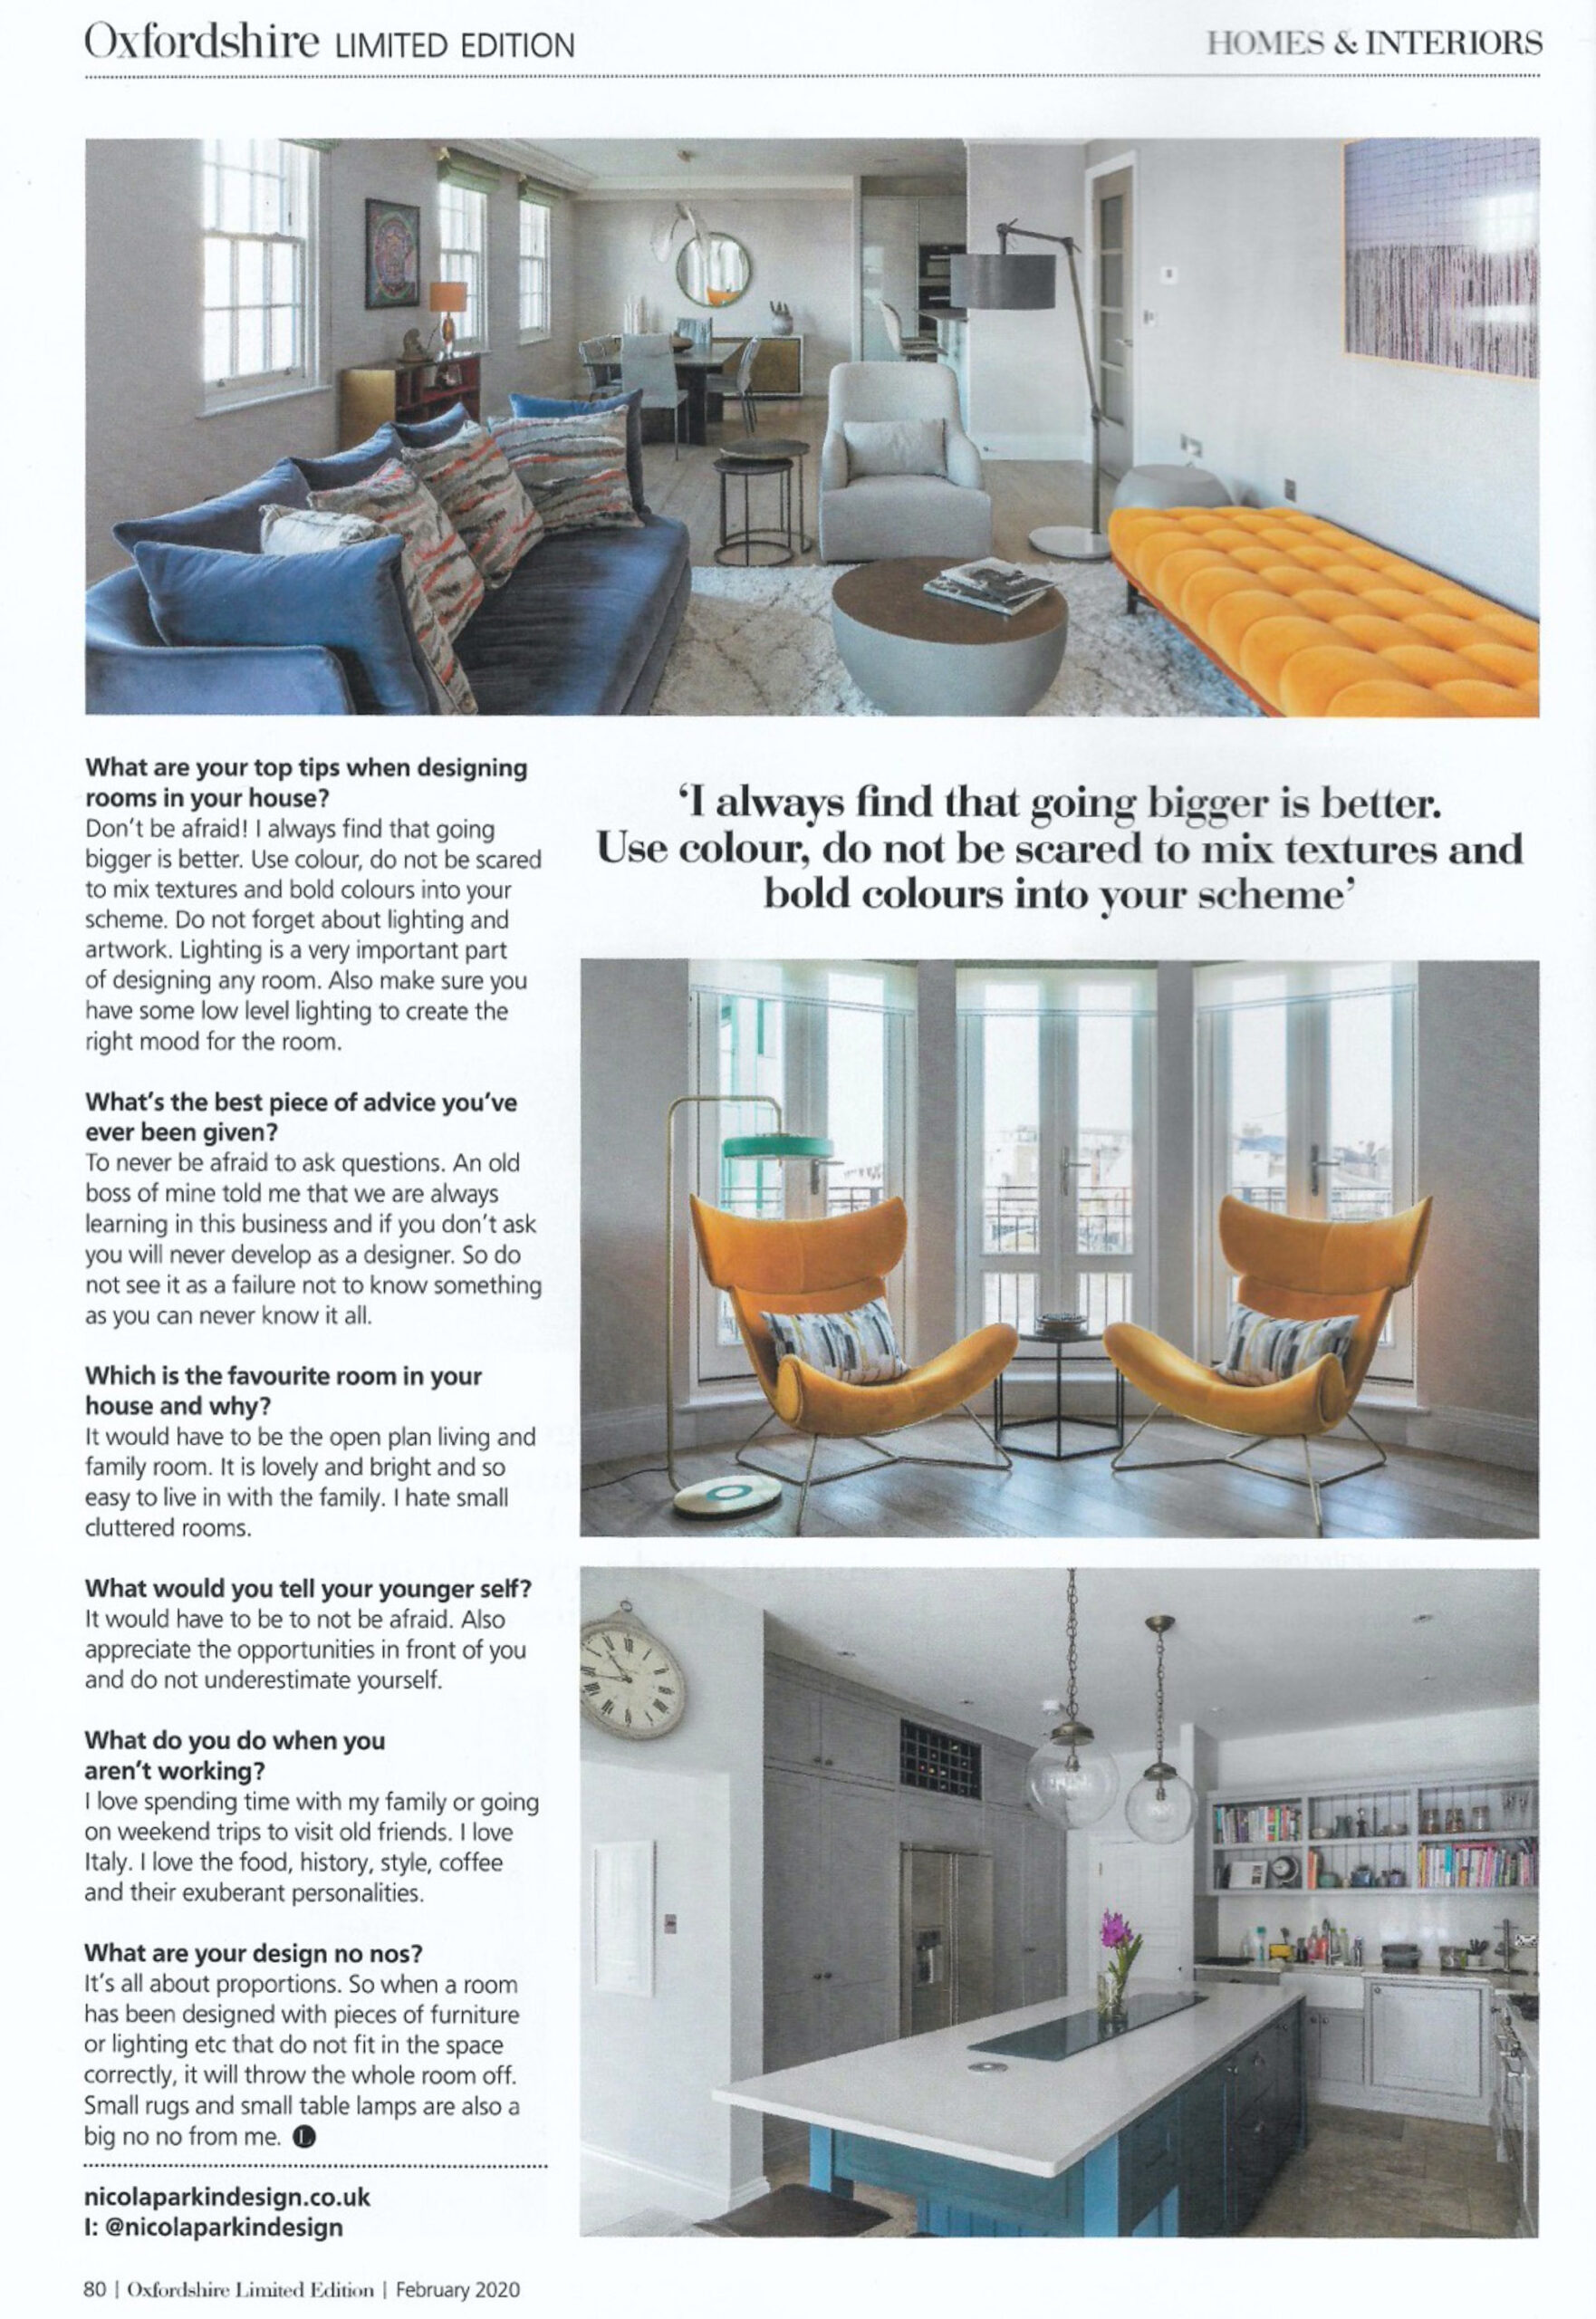 Oxfordshire Page 3